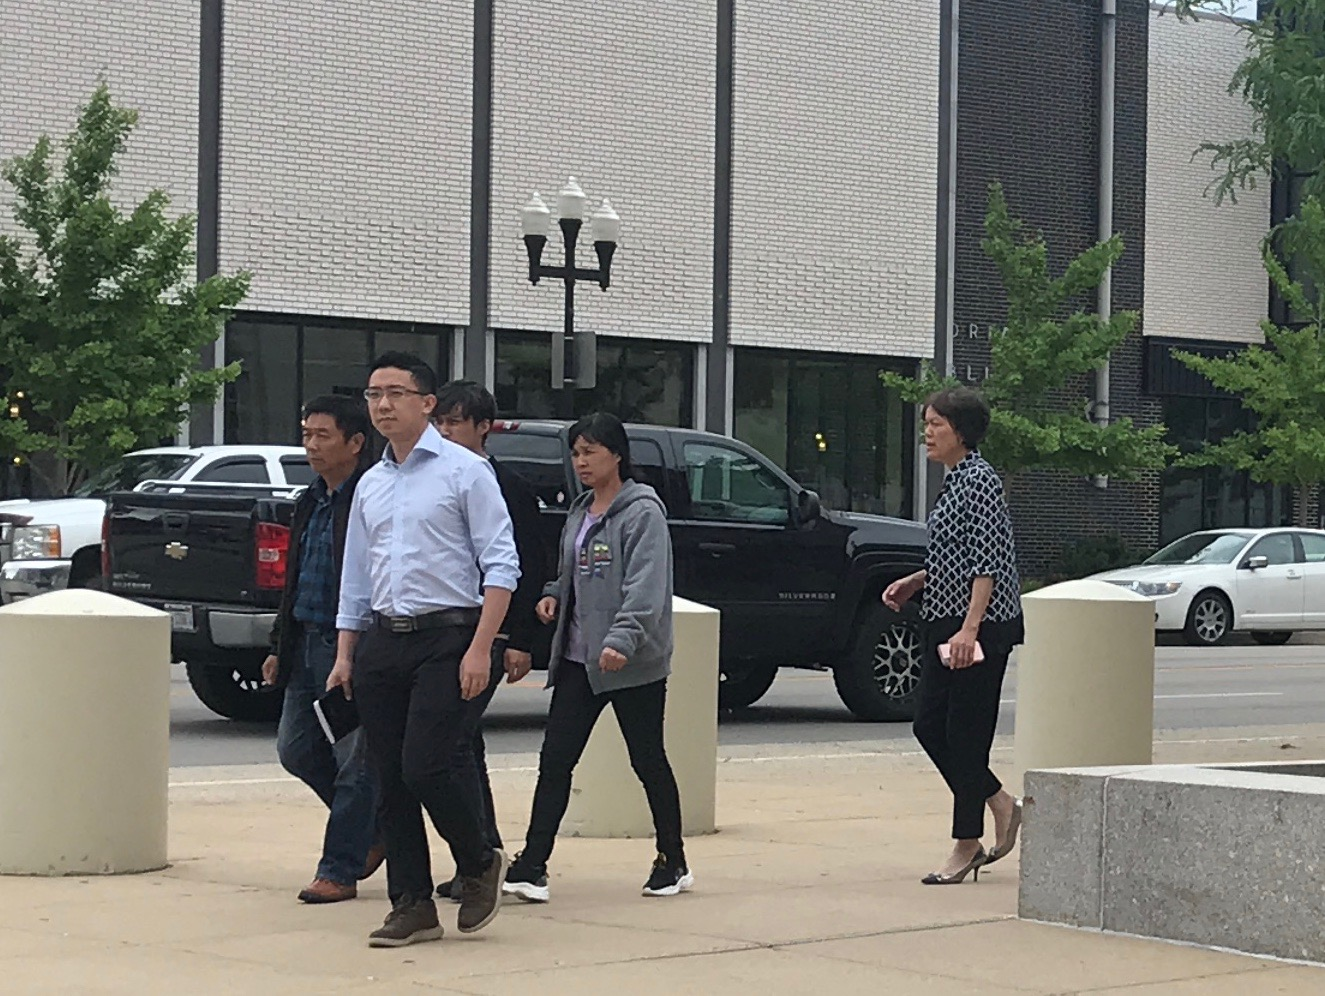 Leaving the courthouse Wednesday, members of Yingying Zhang's family walk behind Zhang's fiancé, Xio Linhou who she planned to marry in October 2017. Opening statements began Wednesday morning following the testimonies of nine witnesses brought in by the government.